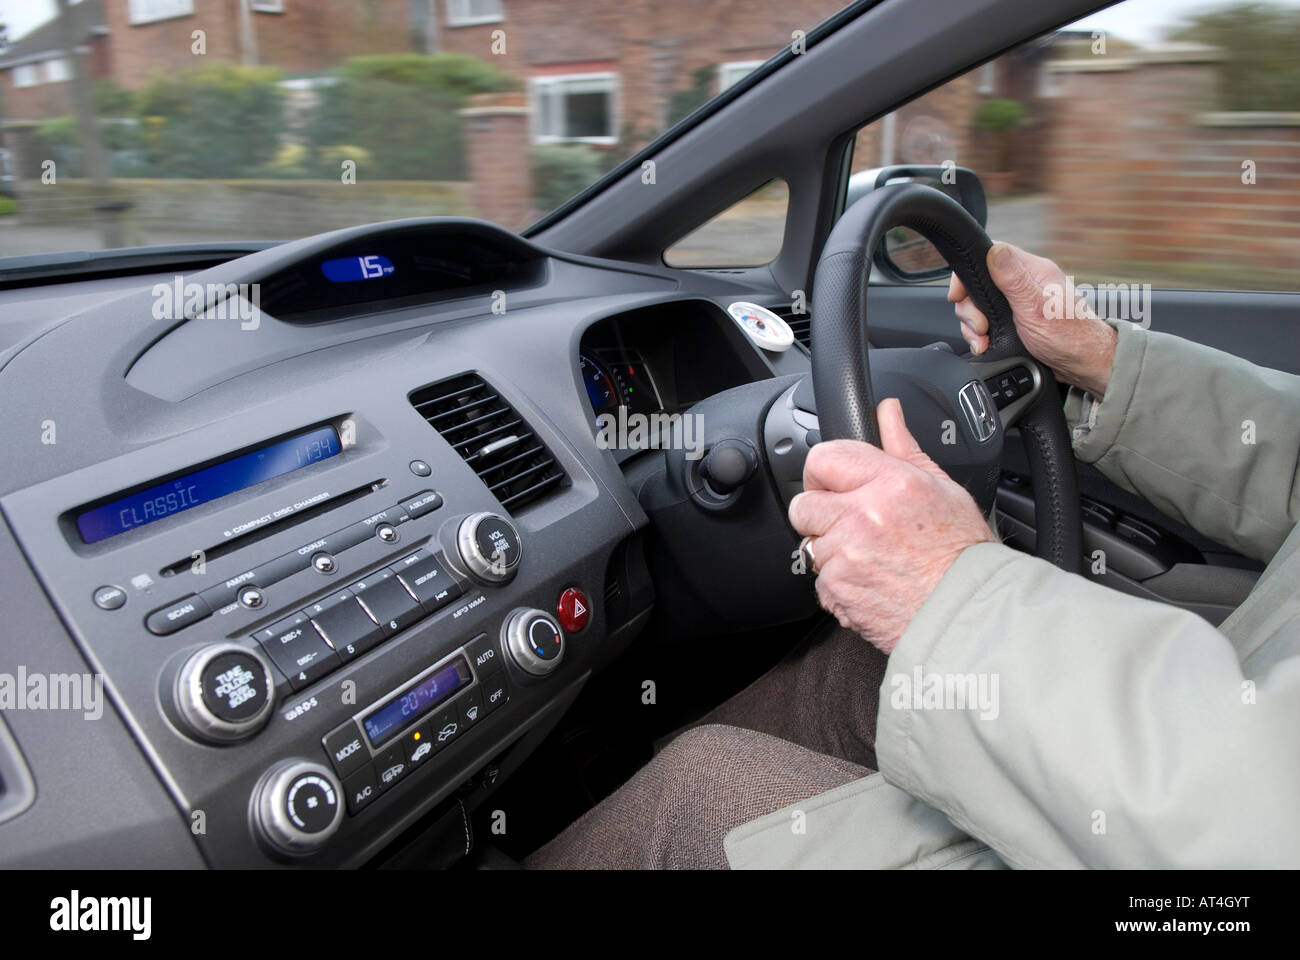 retired person driving hybrid motor car - Stock Image